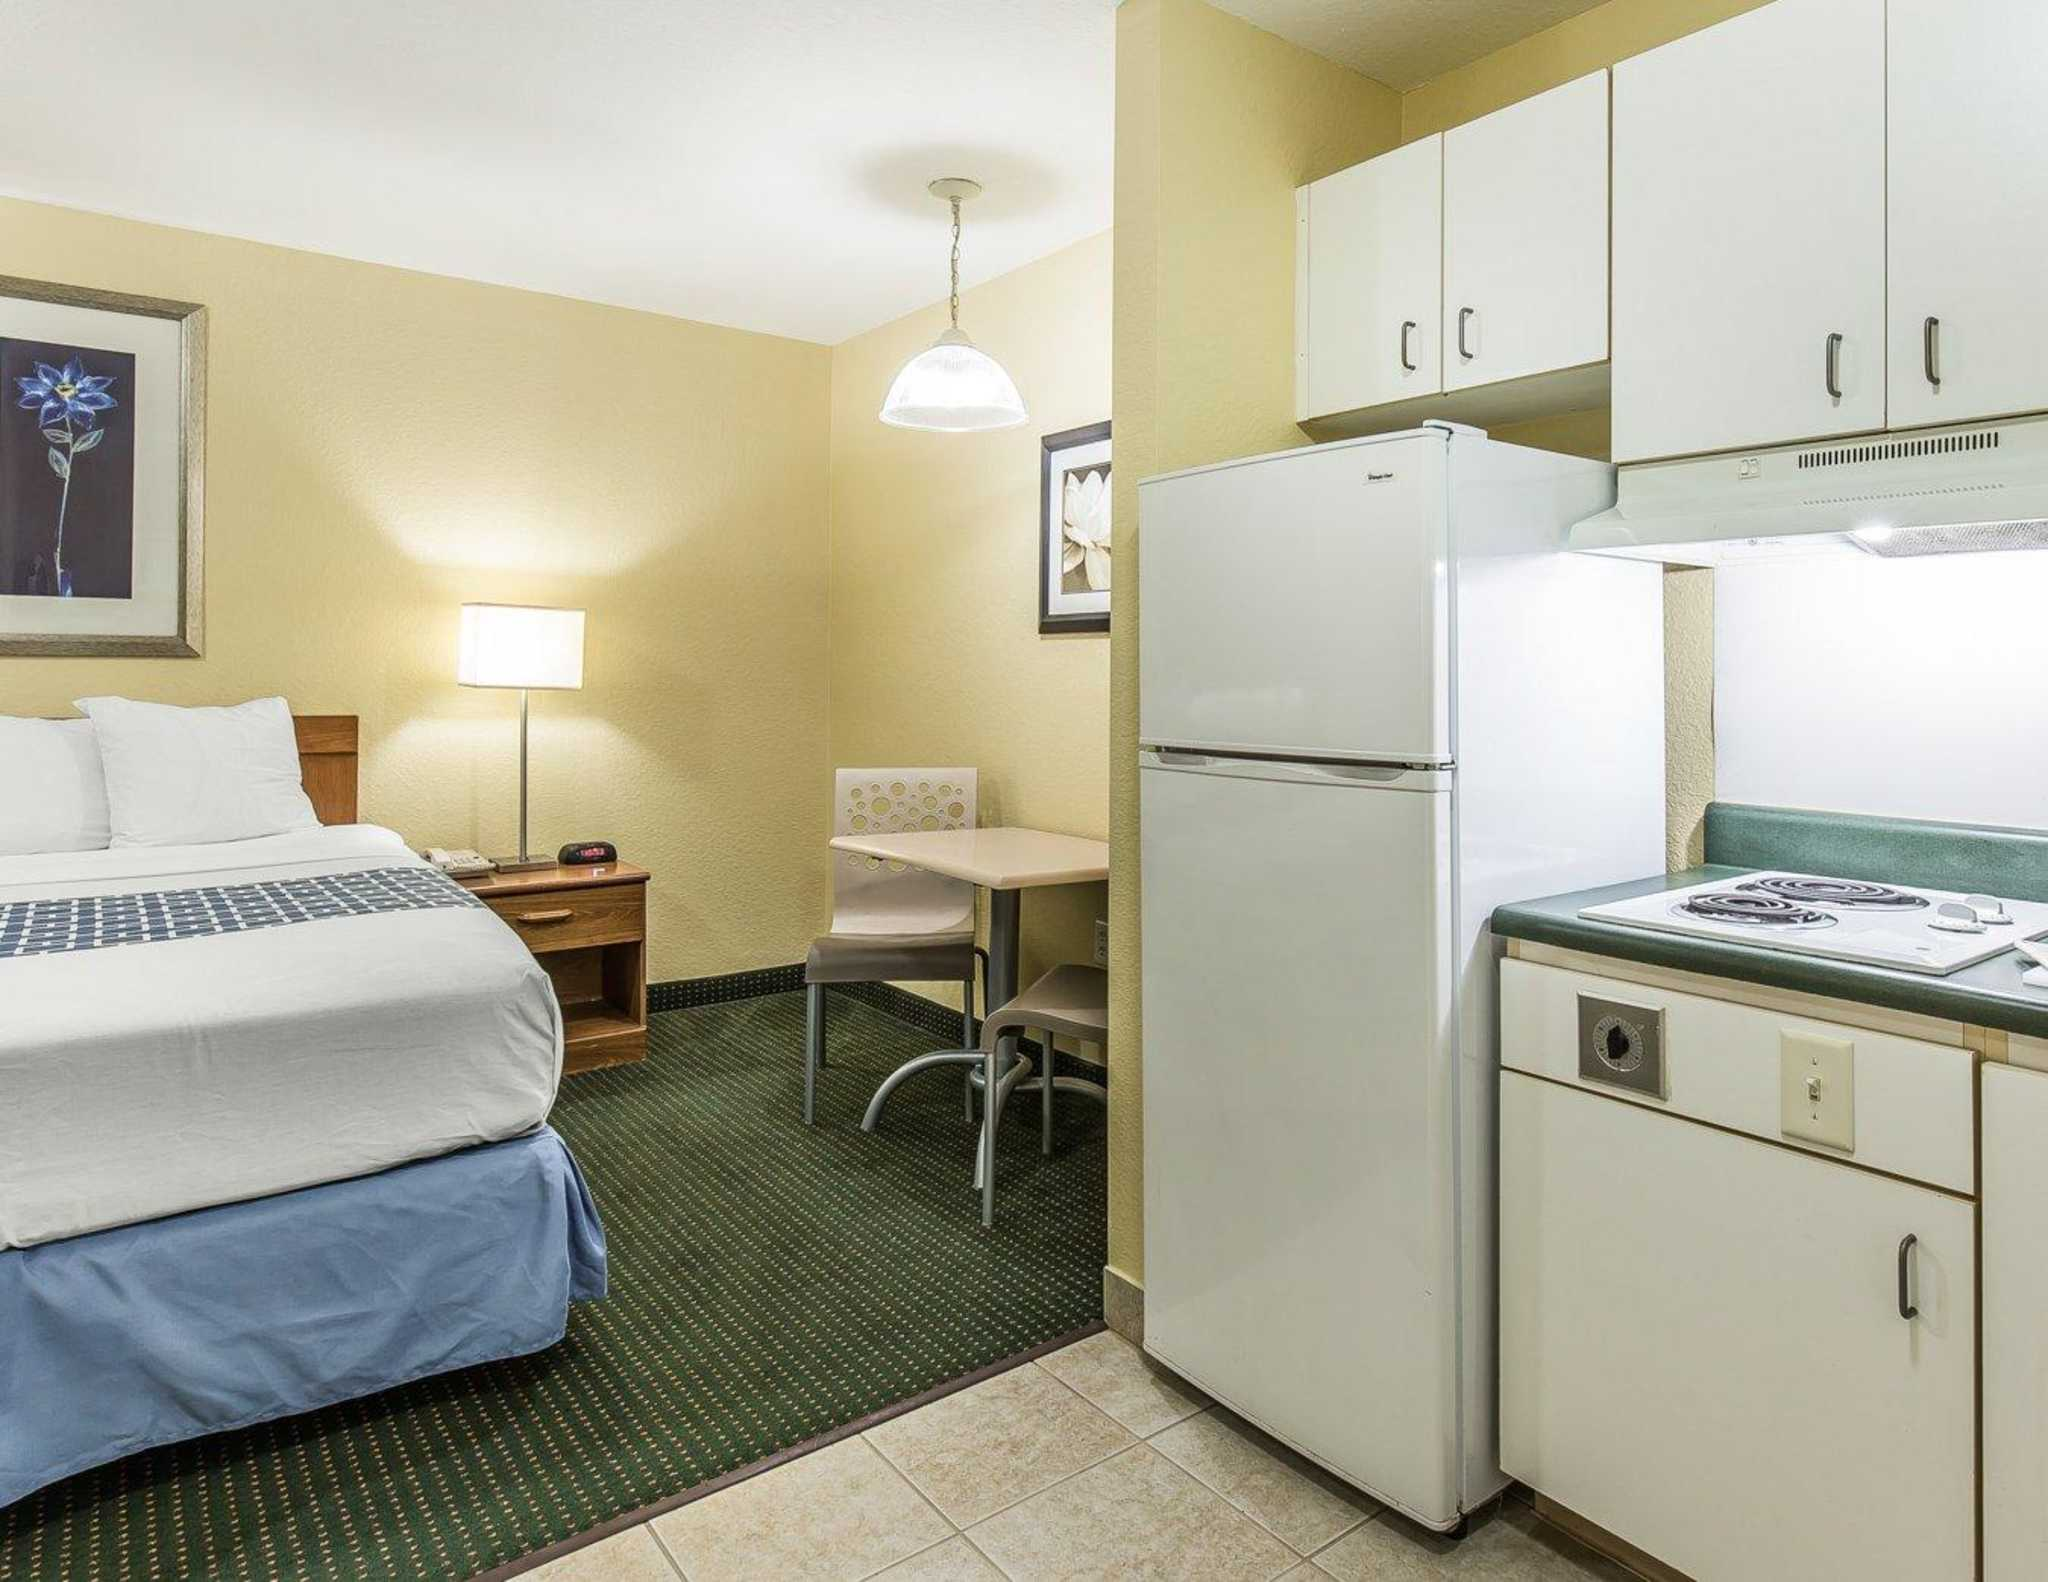 Suburban Extended Stay Hotel image 21